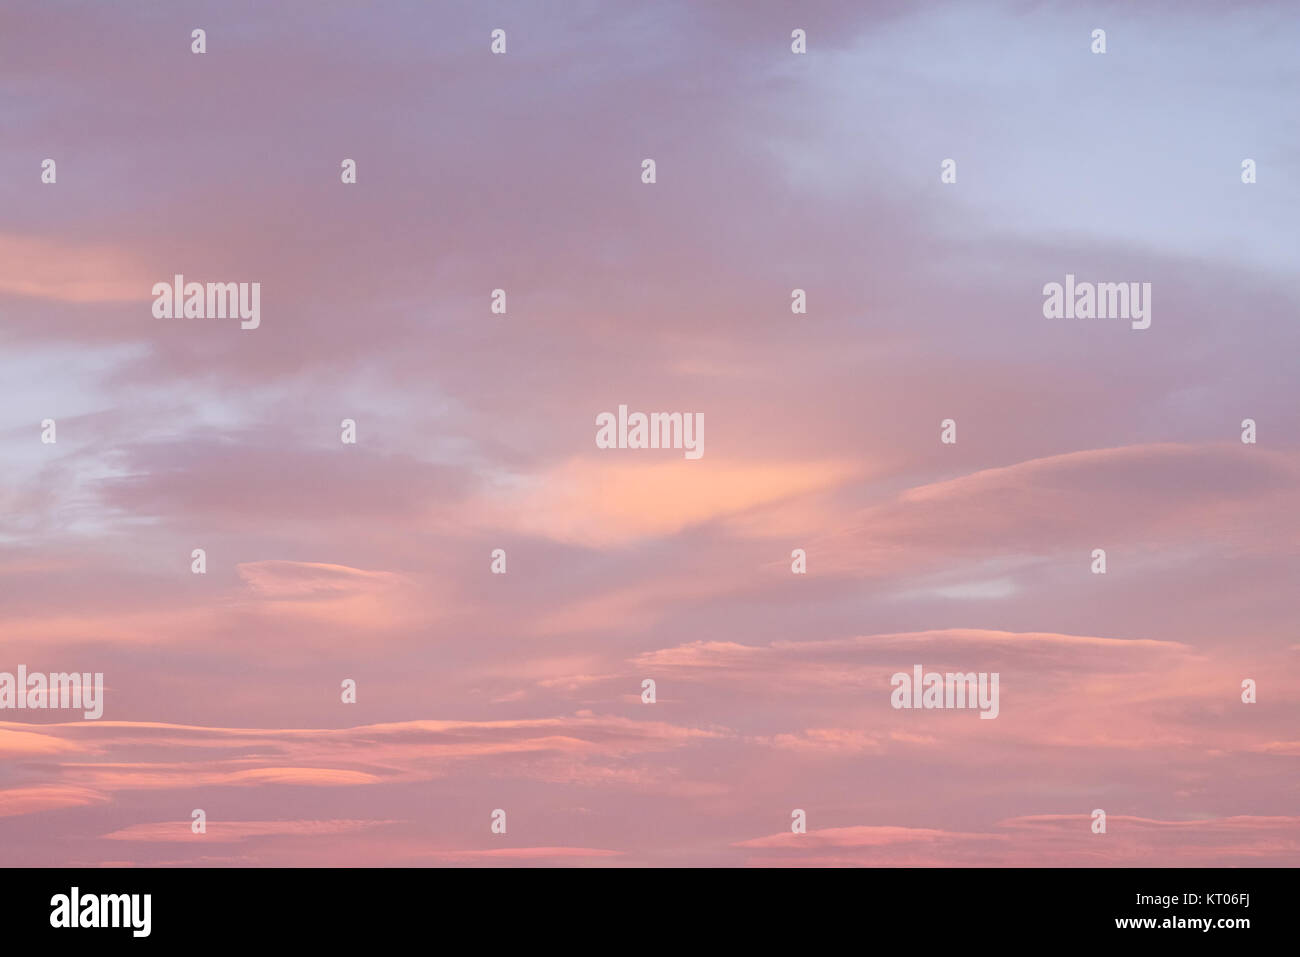 Skyscape - pink clouds at sunset - Stock Image